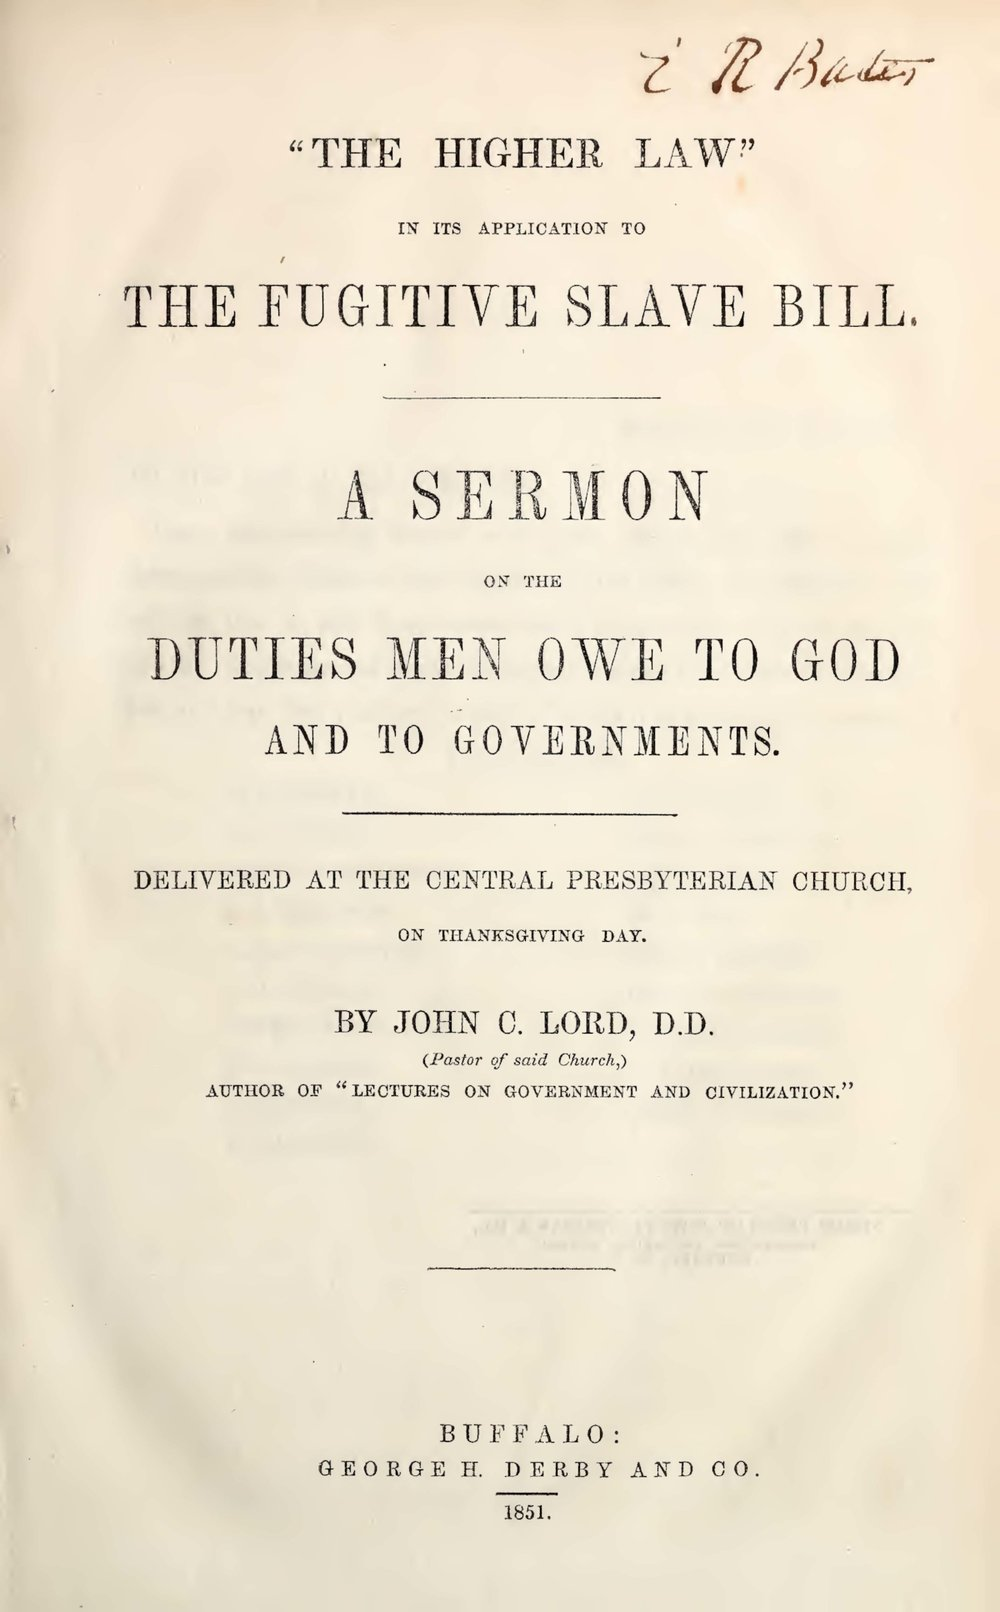 Lord, John Chase, The Higher Law Title Page.jpg